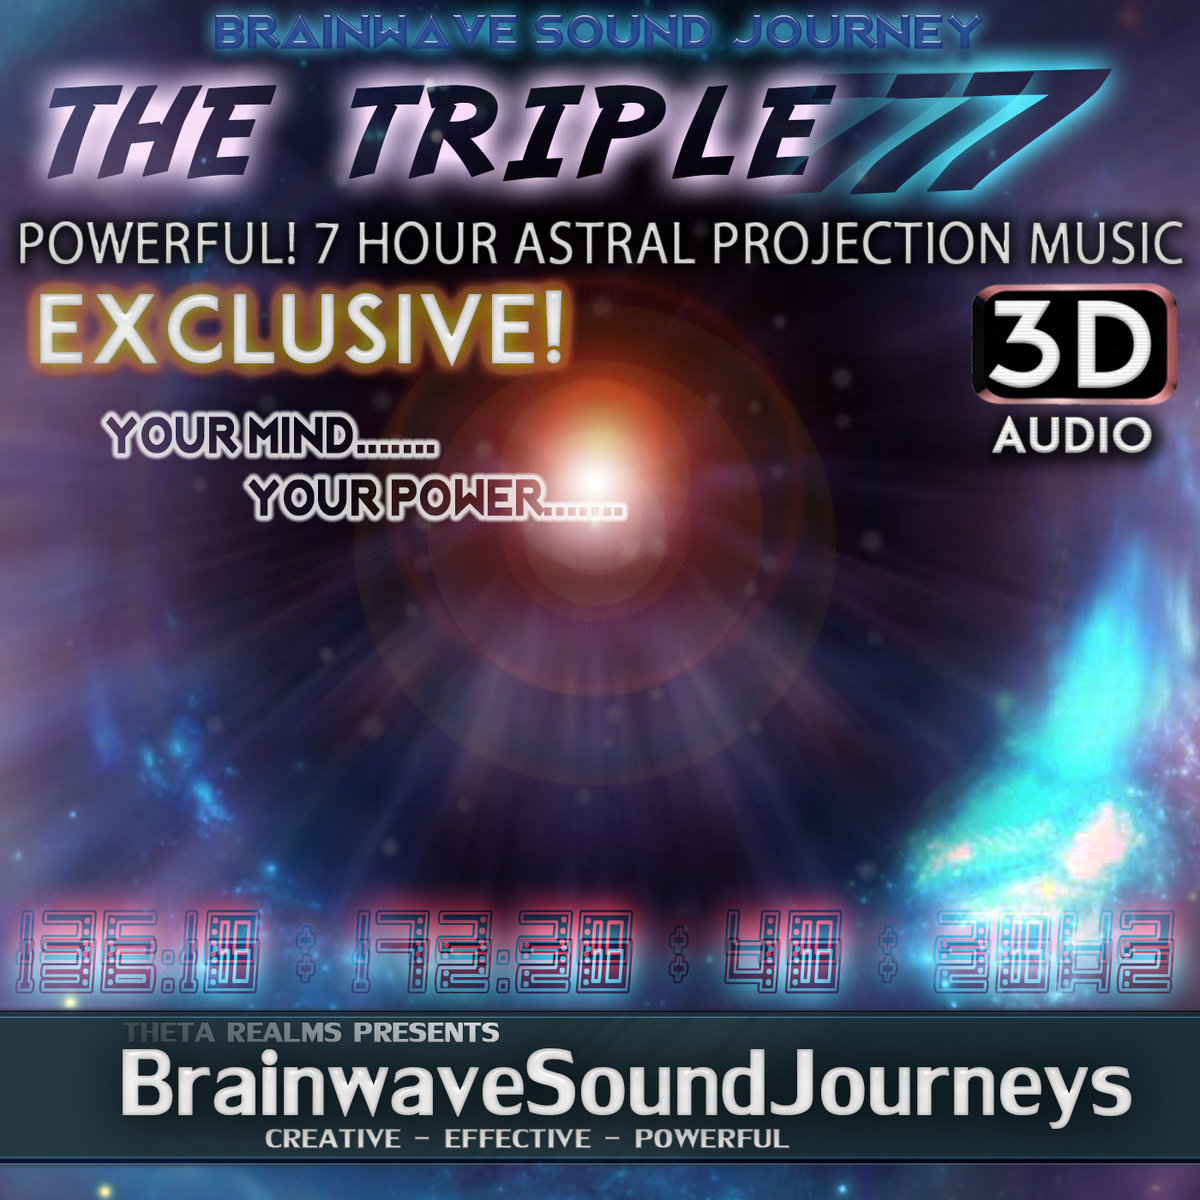 OBE BINAURAL BEATS THAT GO HARD!!! With Powerful Theta Waves + Out